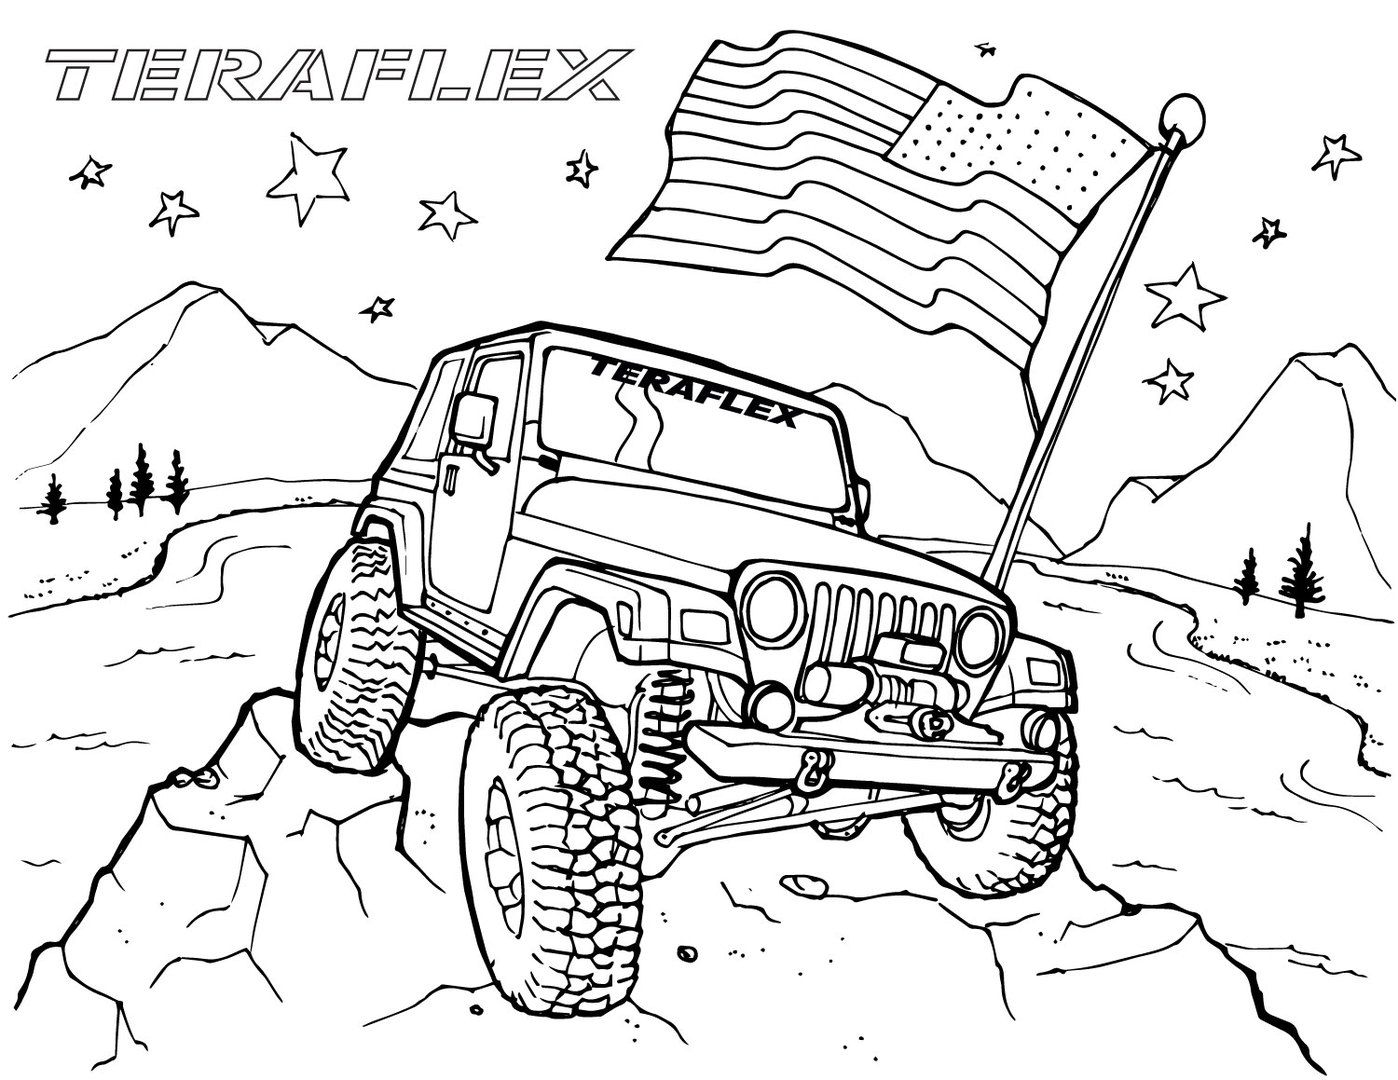 off road truck coloring pages pin by john toth on coloring jeep art coloring pages coloring road pages truck off